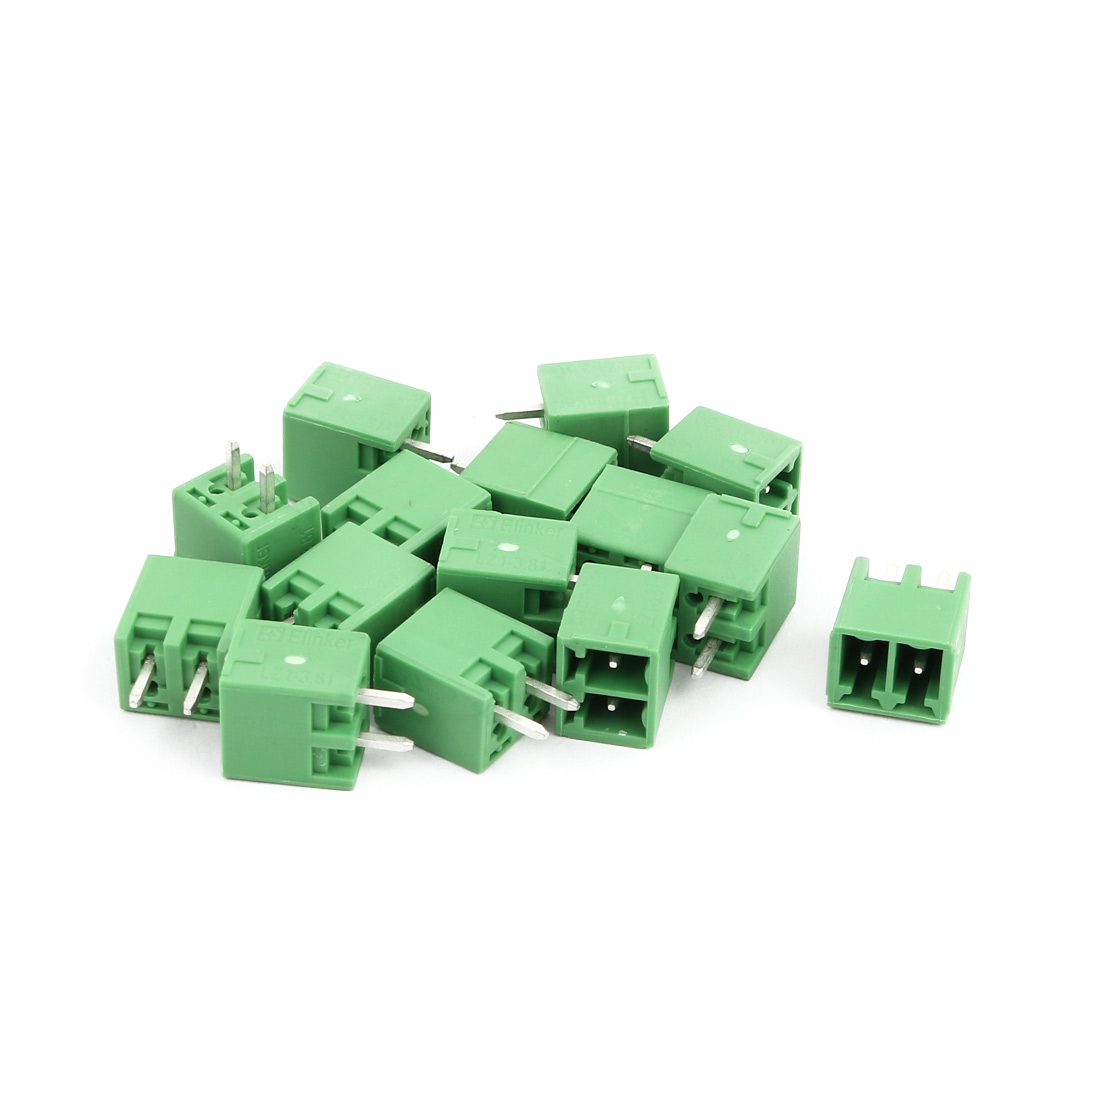 15Pcs AC300V 8A 3.81mm Pitch 2P Terminals Block Wire Connection for PCB Mounting